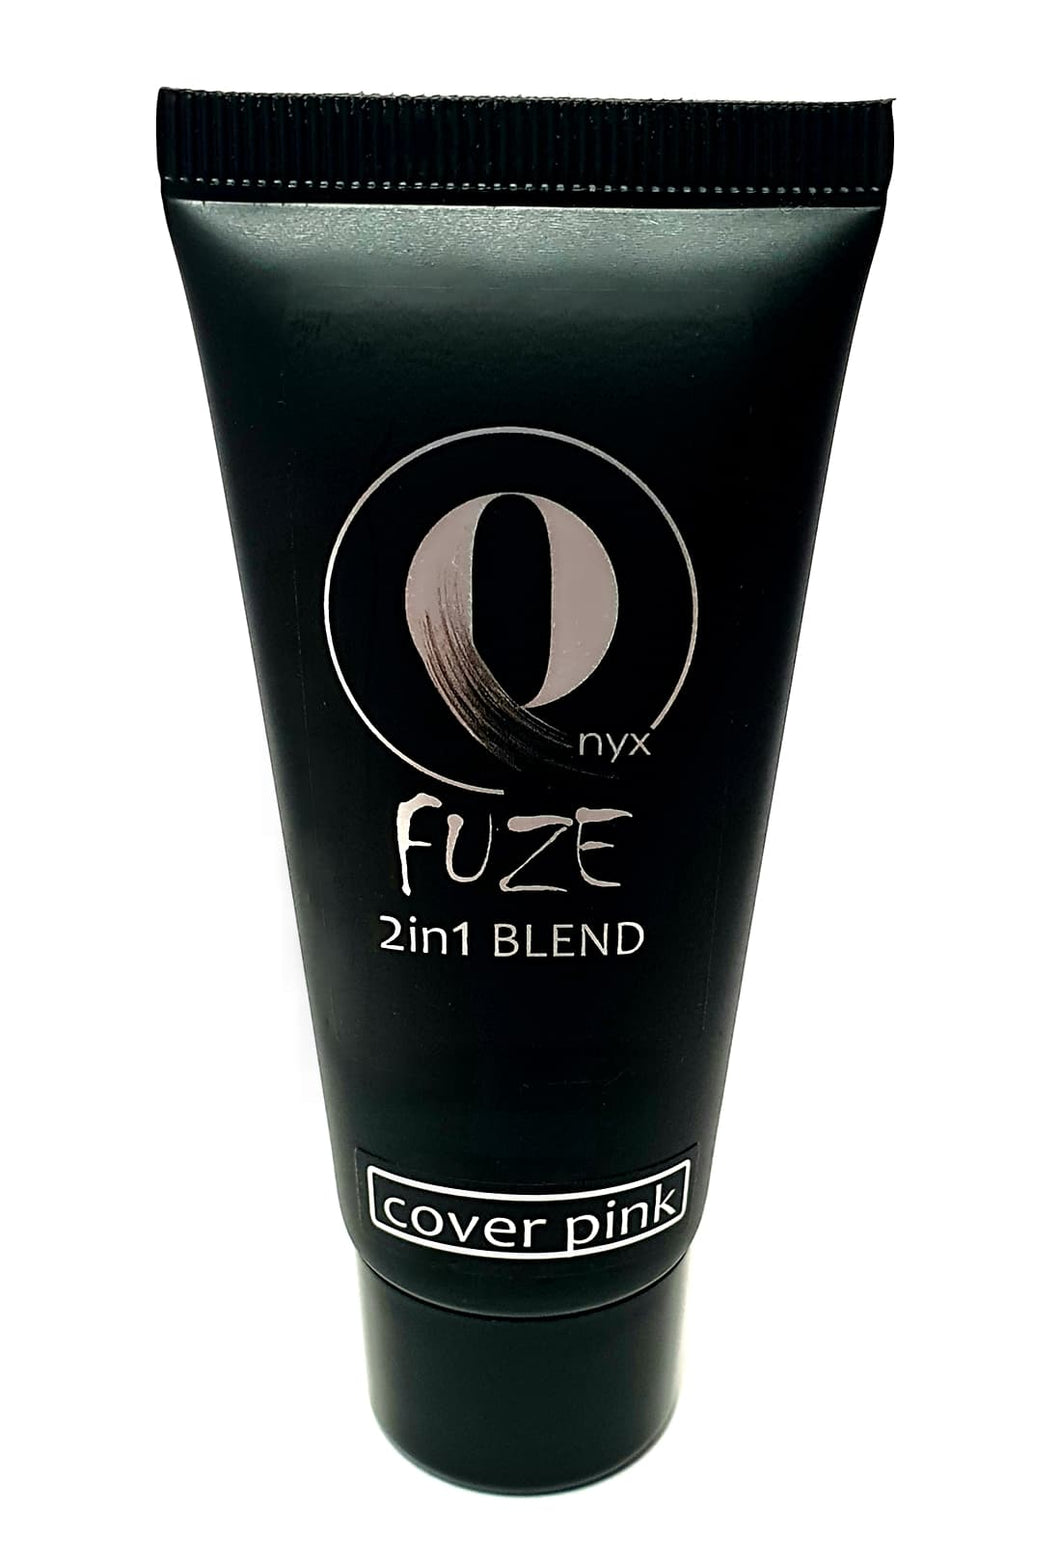 Fuze 2in1 Blend - Cover Pink